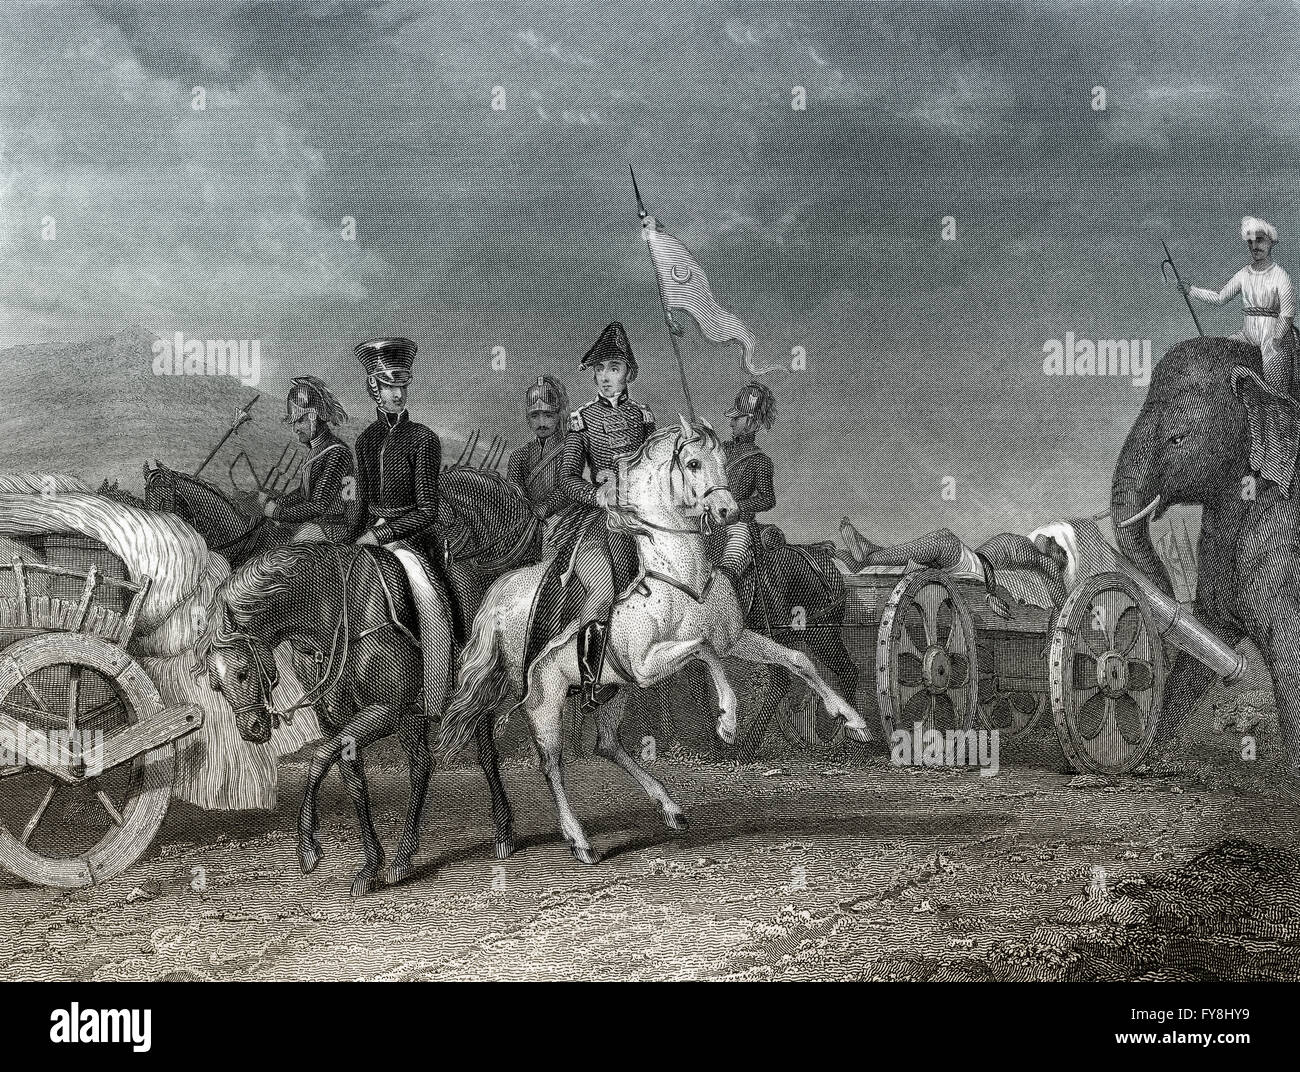 Arthur Wellesley, 1st Duke of Wellington, 1769-1852, defeats Indian leader Dhondia Wagh,  battle of Konagal or Conaghalli, - Stock Image